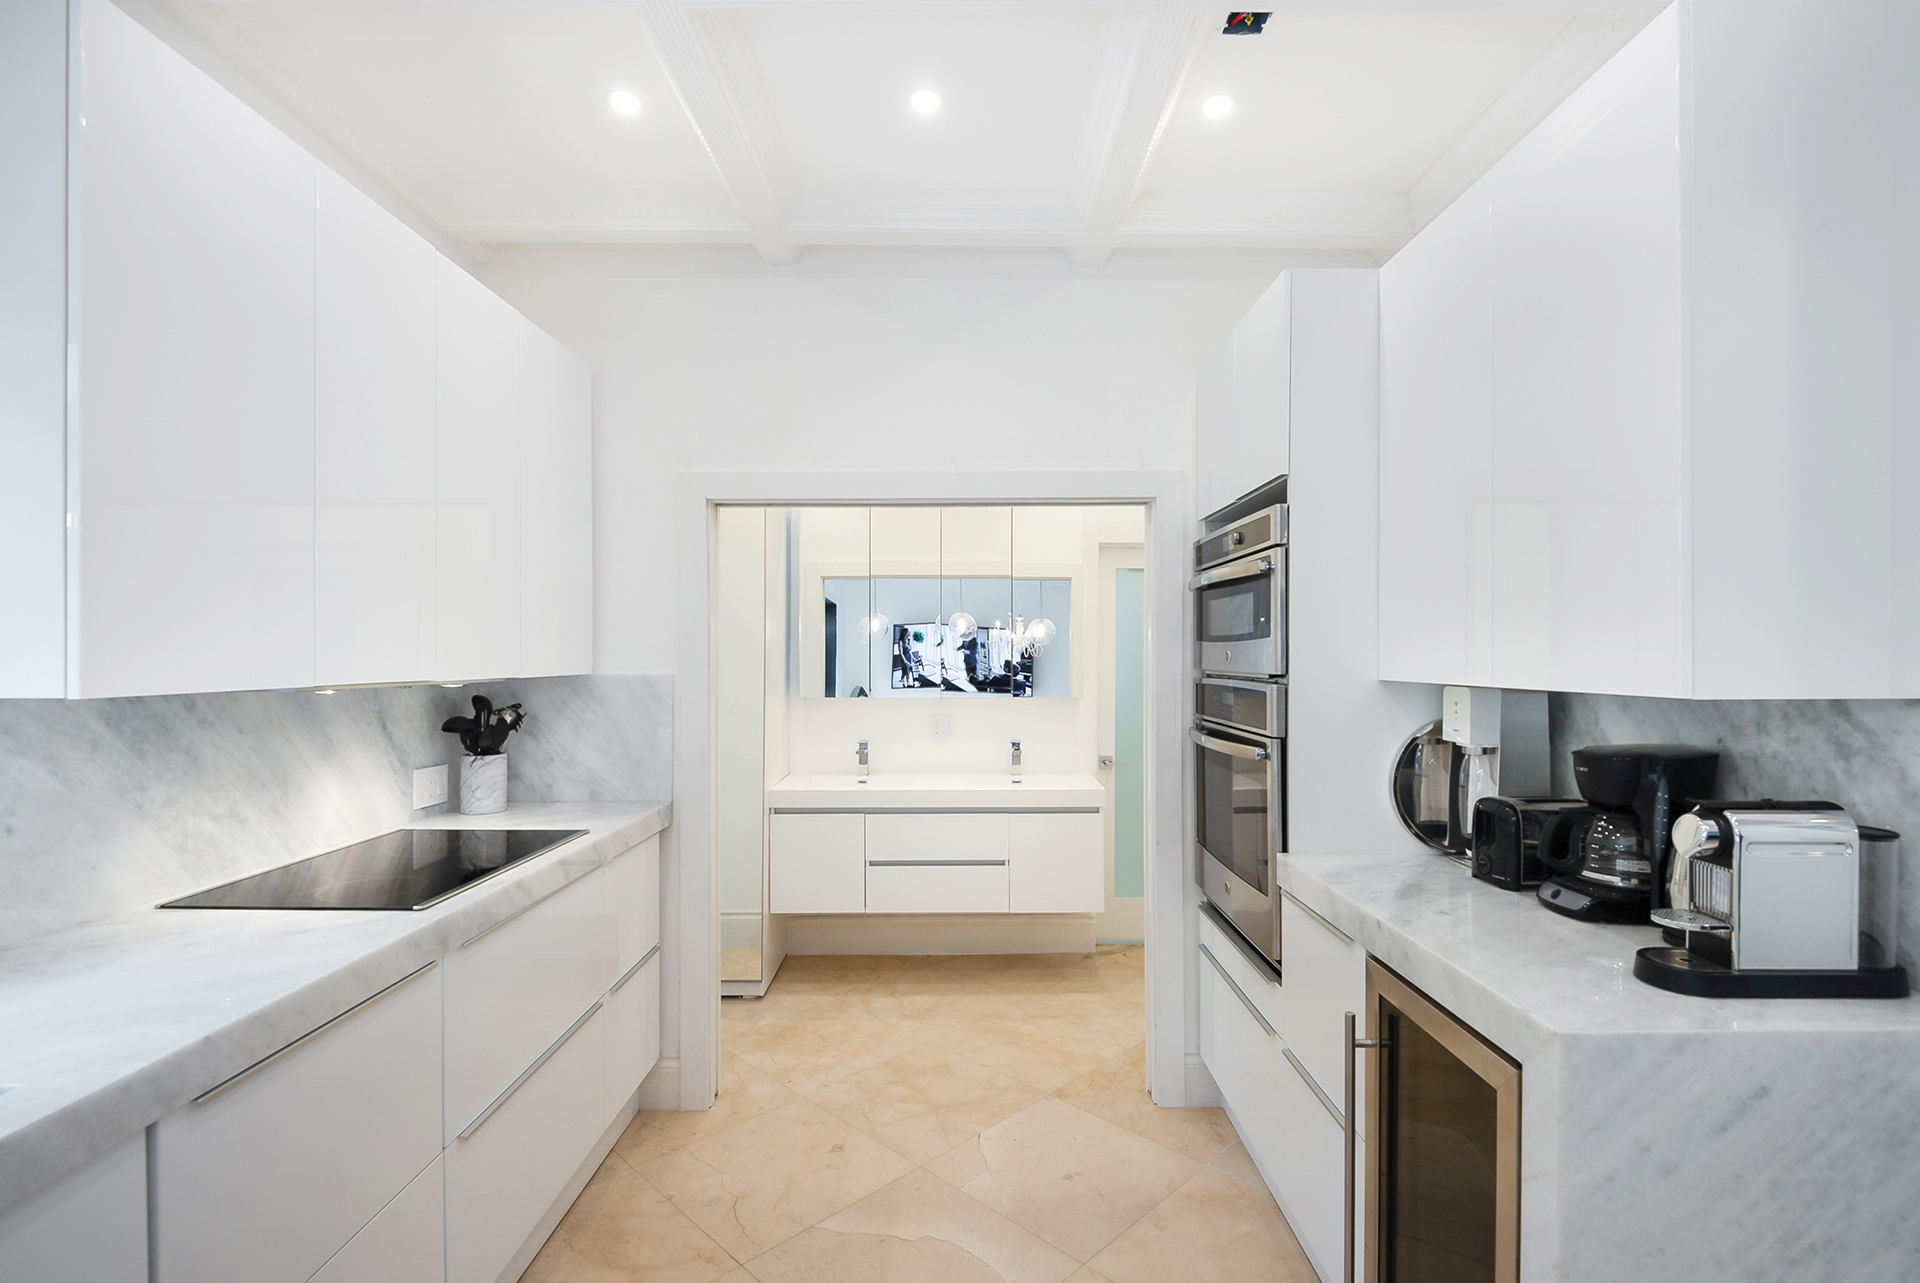 6-kitchen-with-build-in-applicances - South Beach